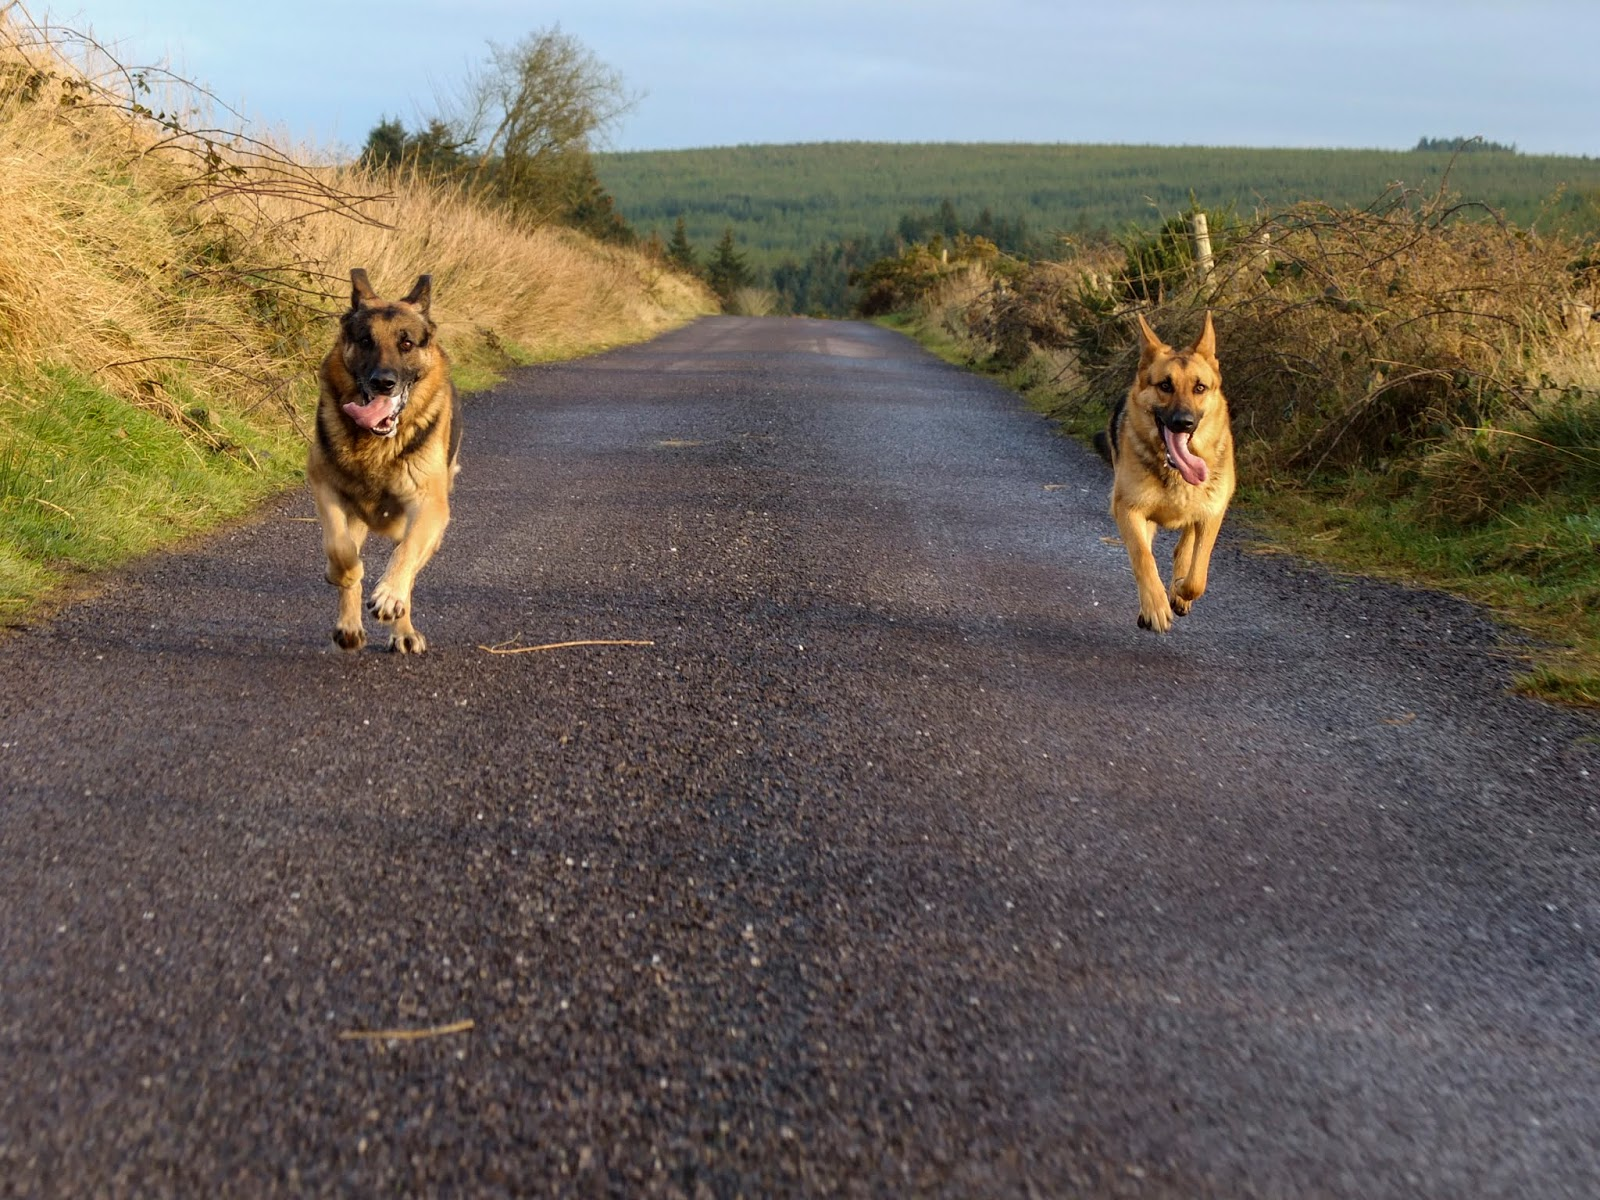 Two German Shepherds, Steve and Nala, running together on a road in the mountains.